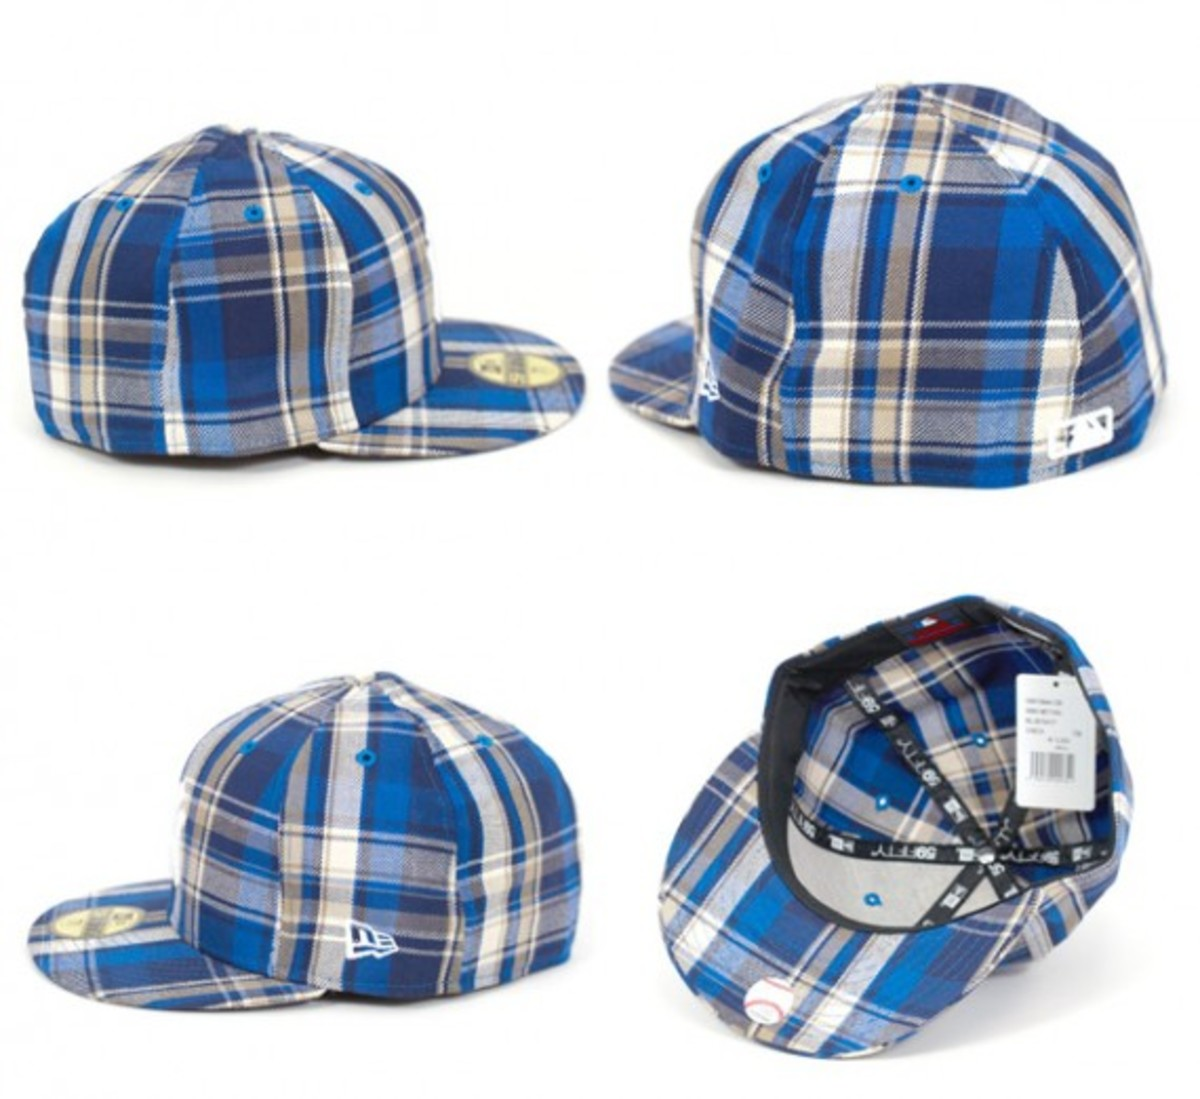 new-era-new-york-yankees-59fifty-fitted-caps-tartan-check-pack-08